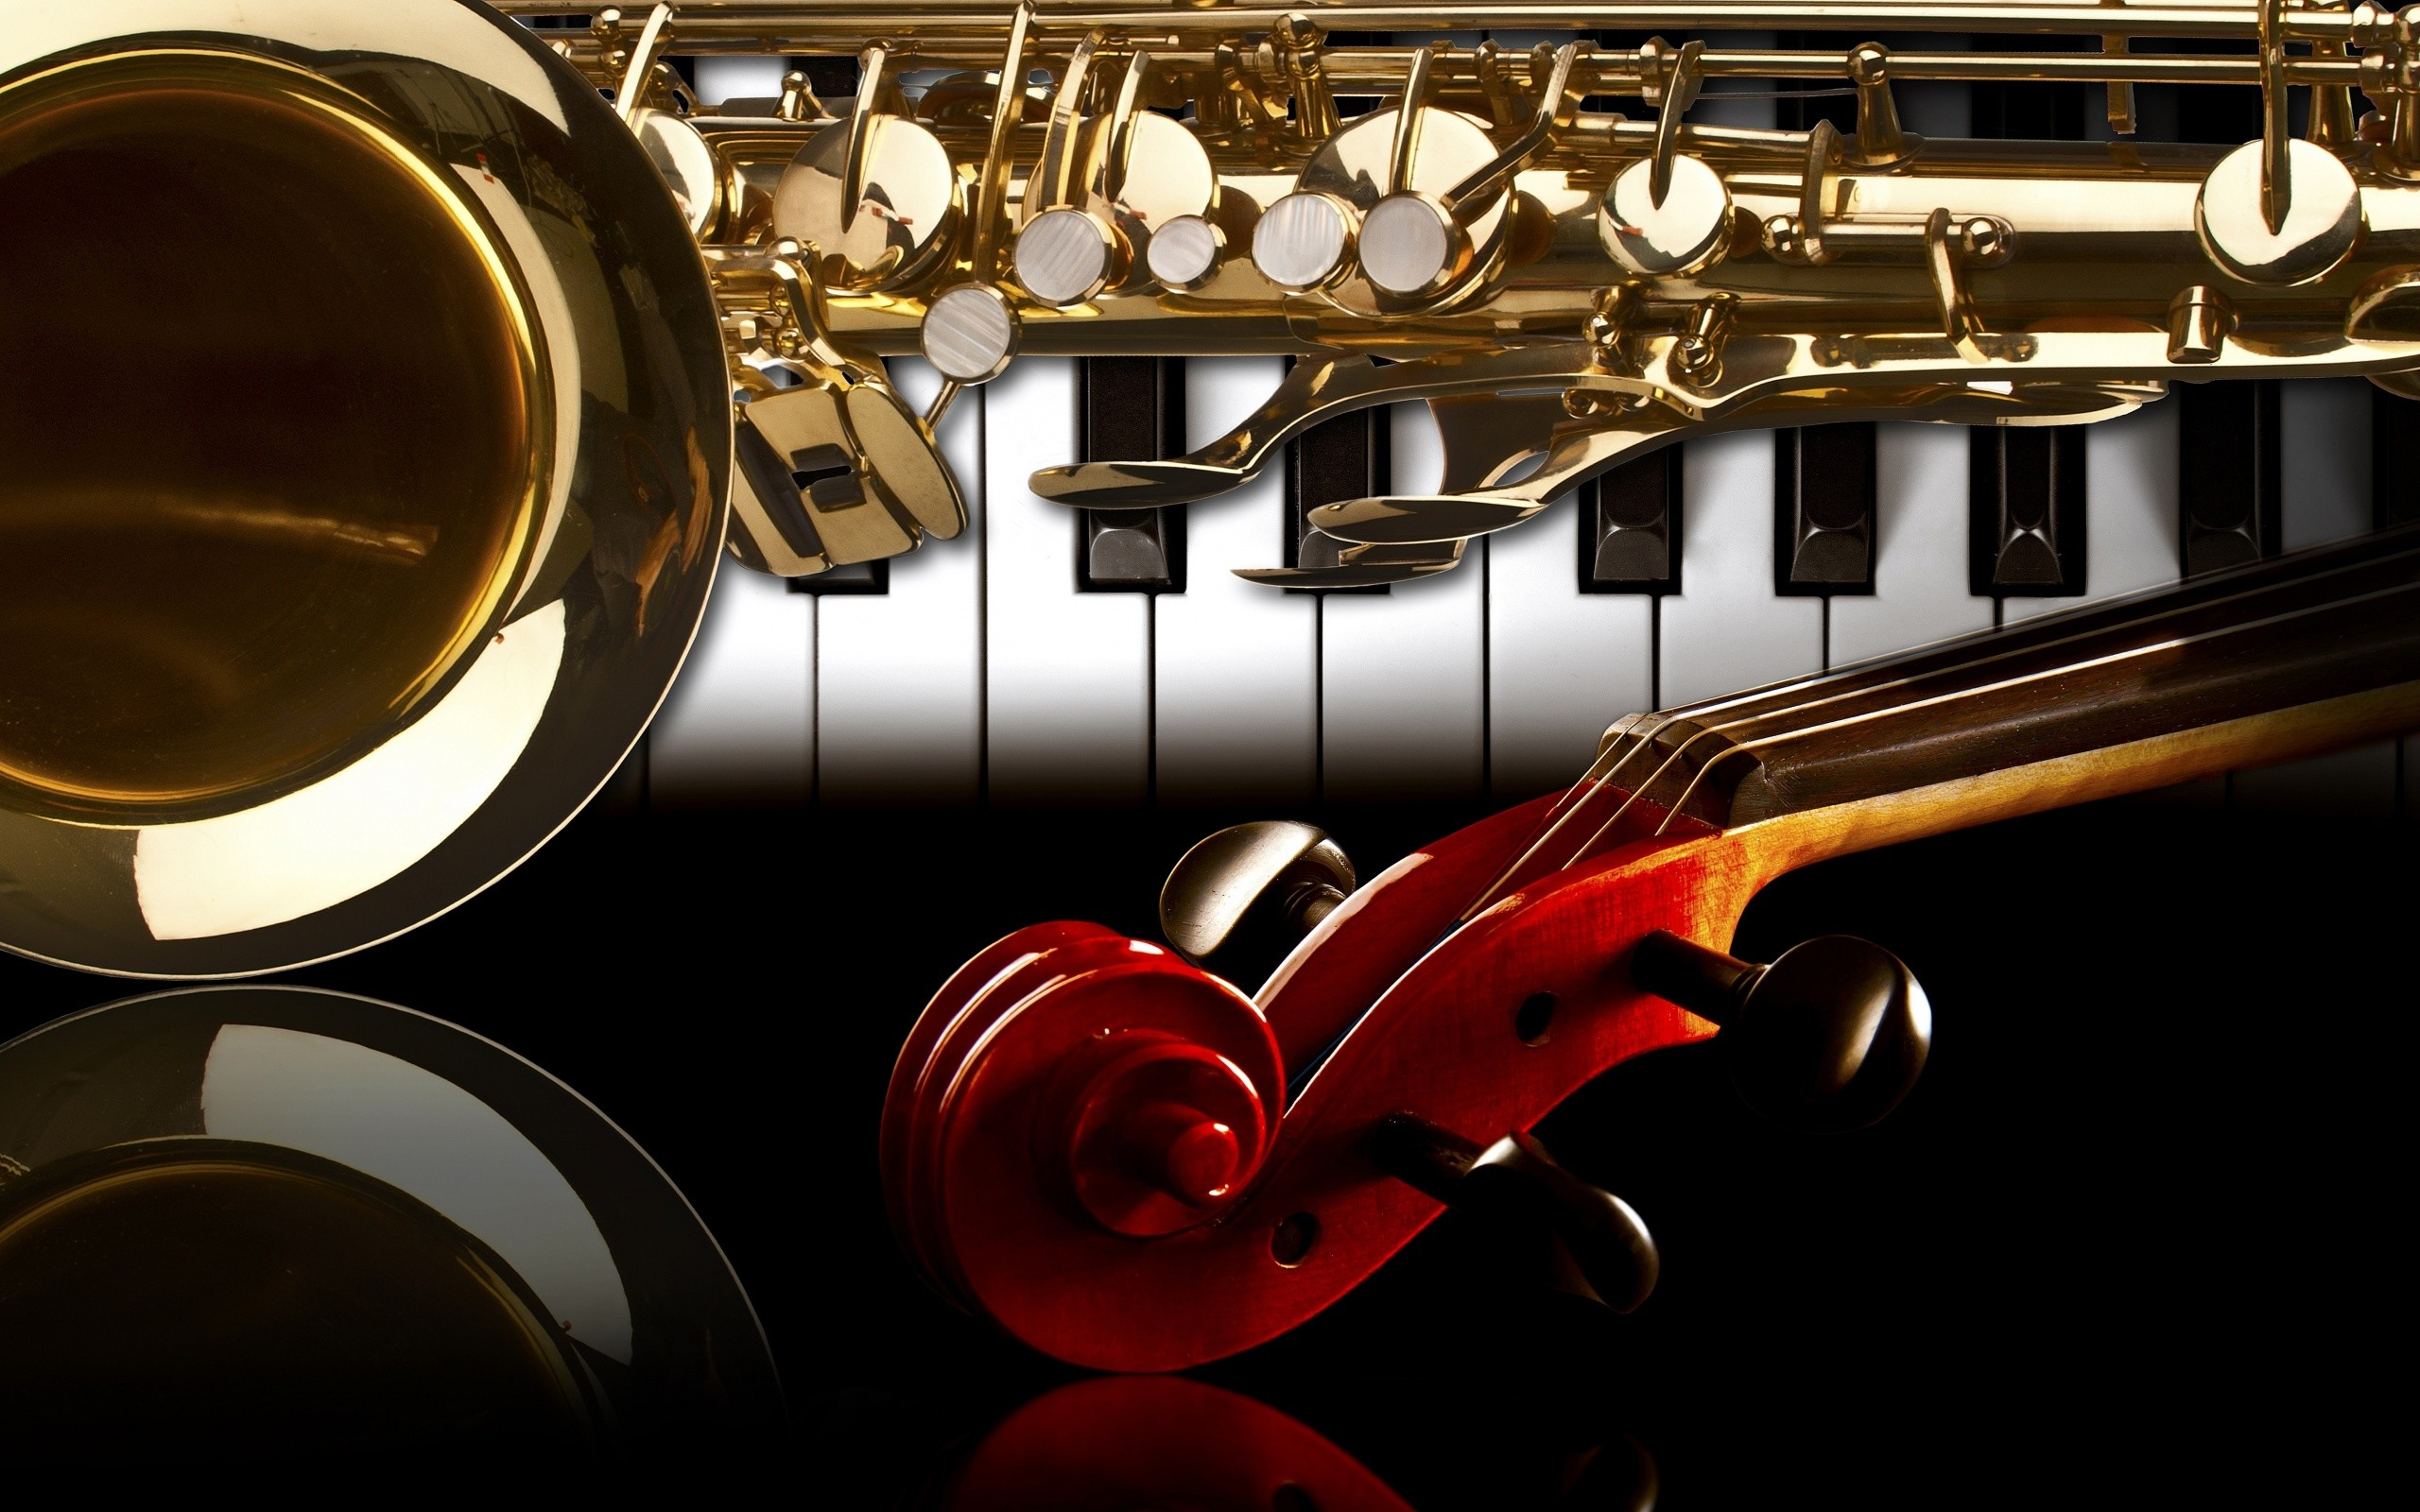 2560x1600 Musical Instrument Wallpaper